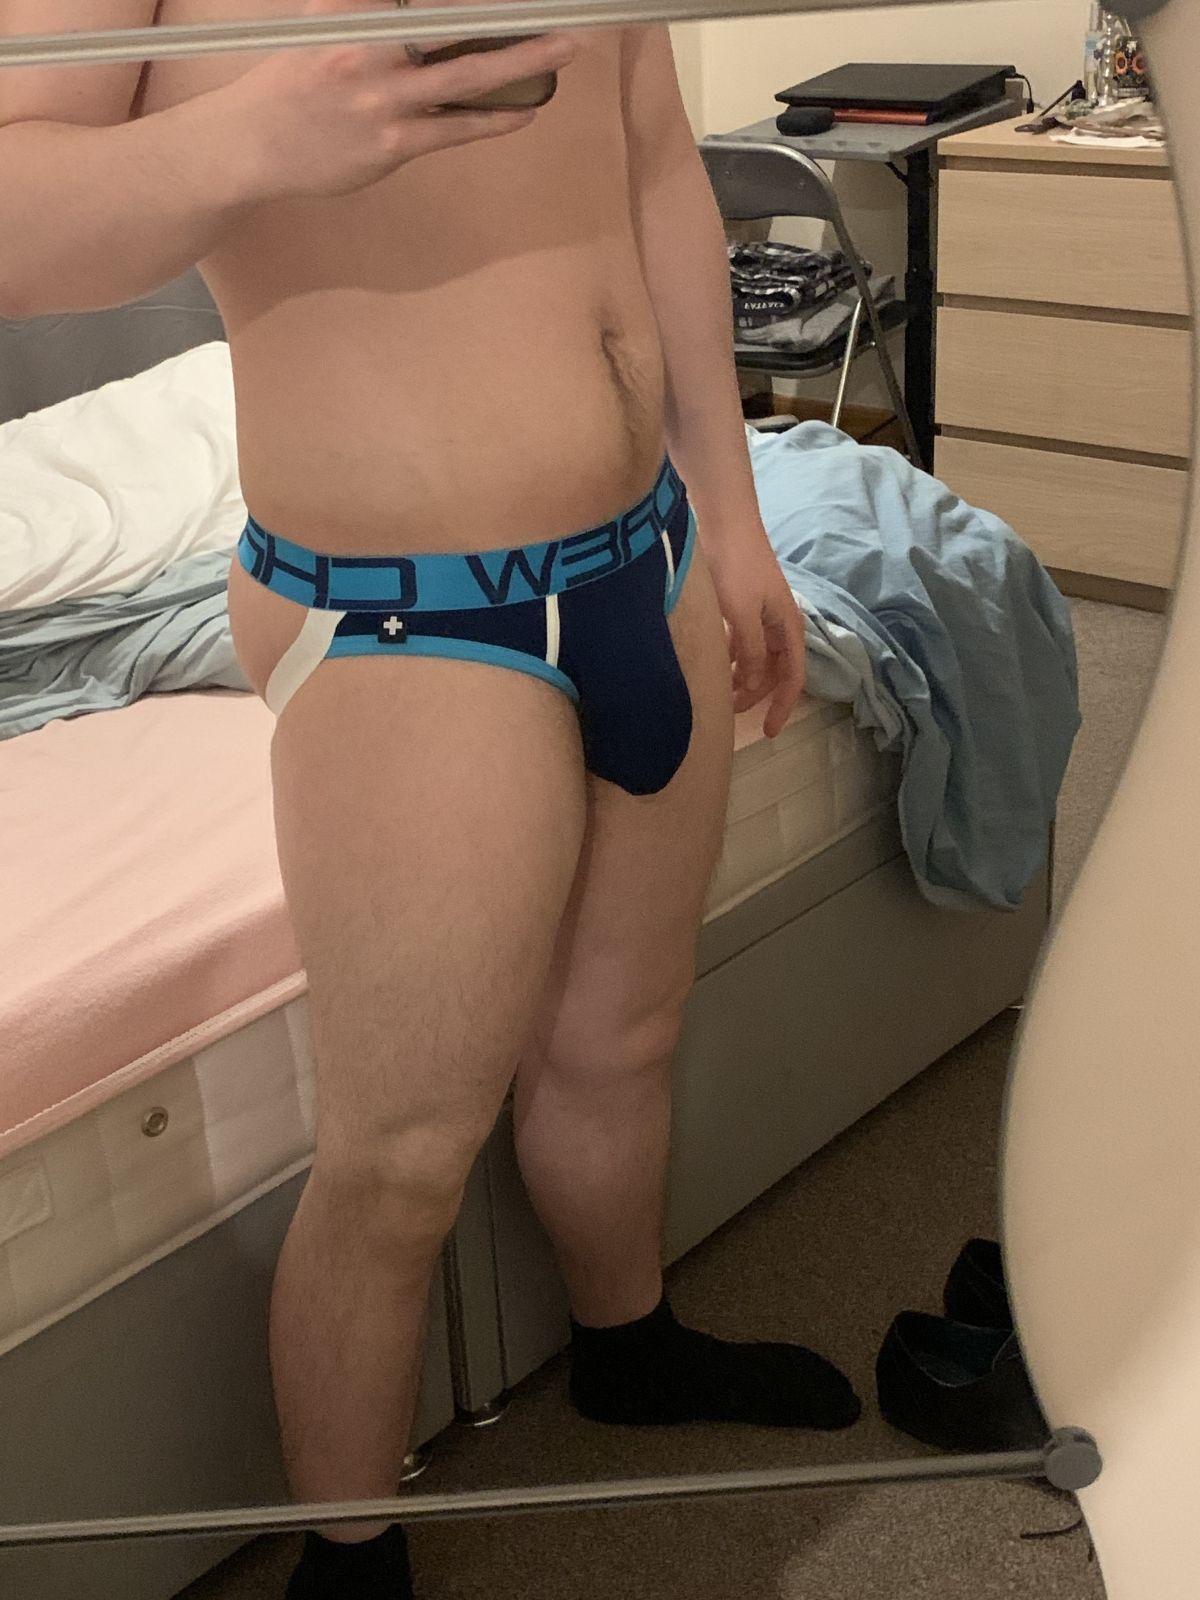 @edithickguy